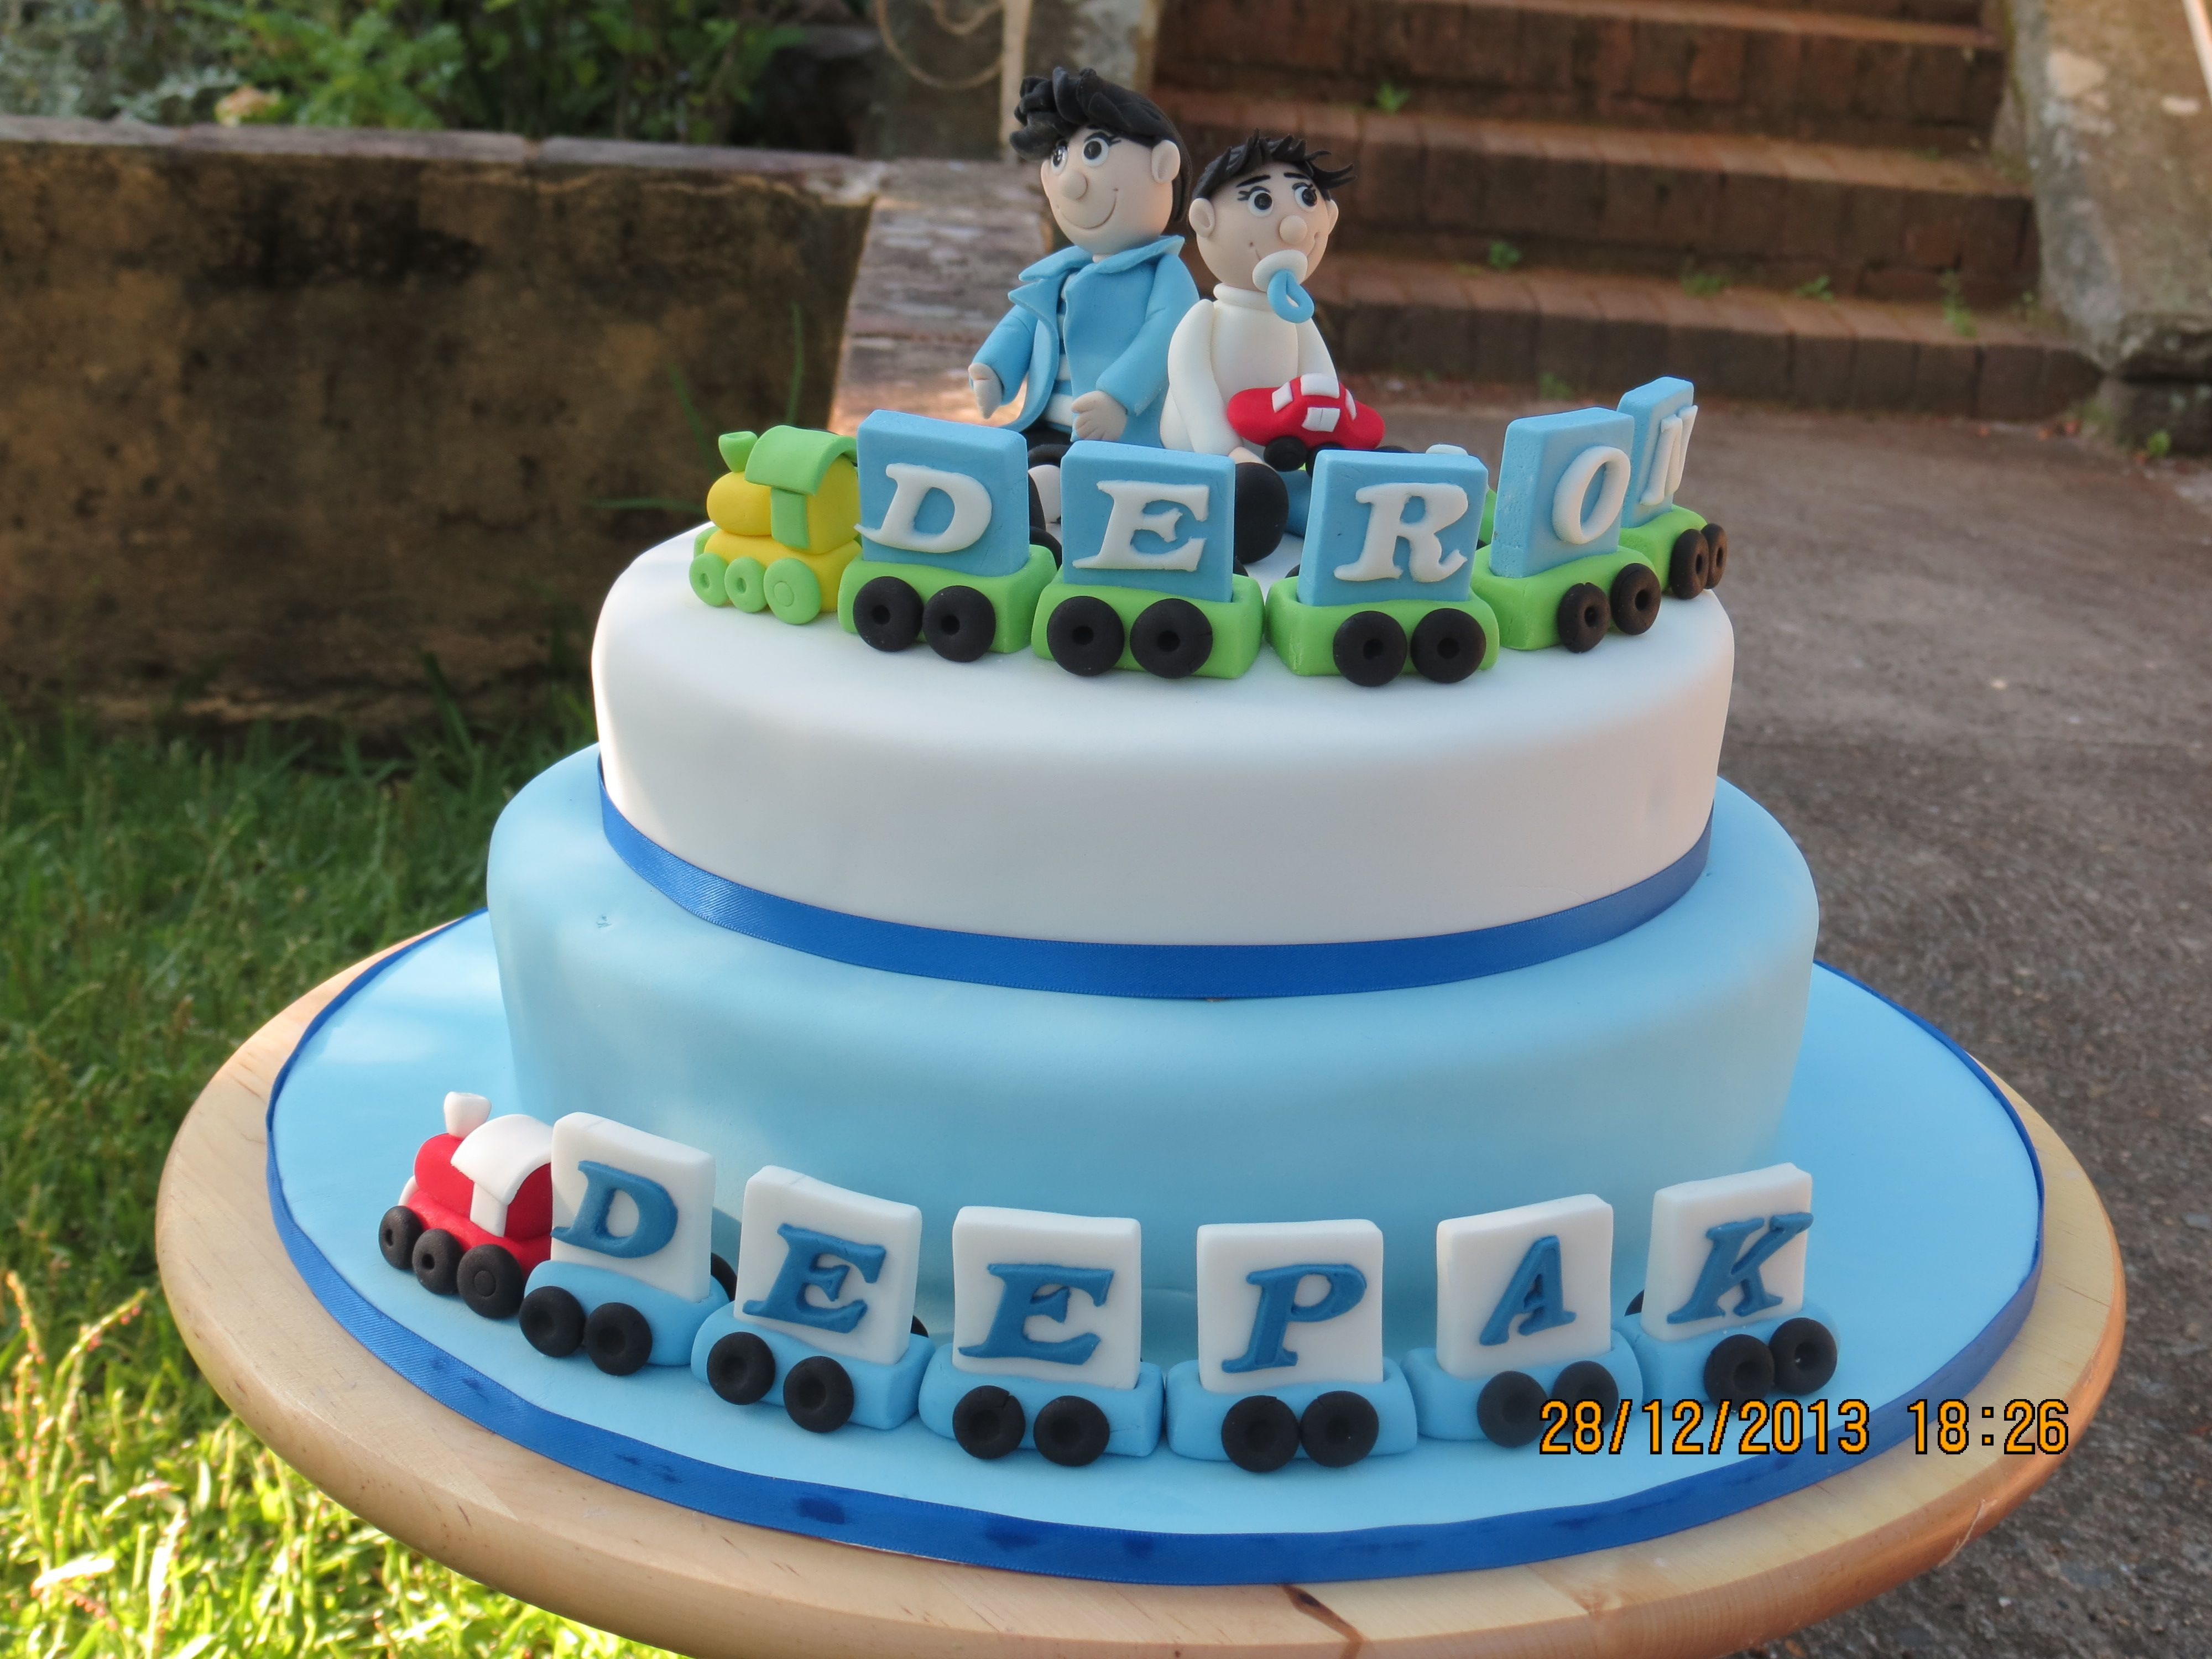 Magnificent Birthday Cake For Dad Deepak And Son Deron With Images Funny Birthday Cards Online Elaedamsfinfo